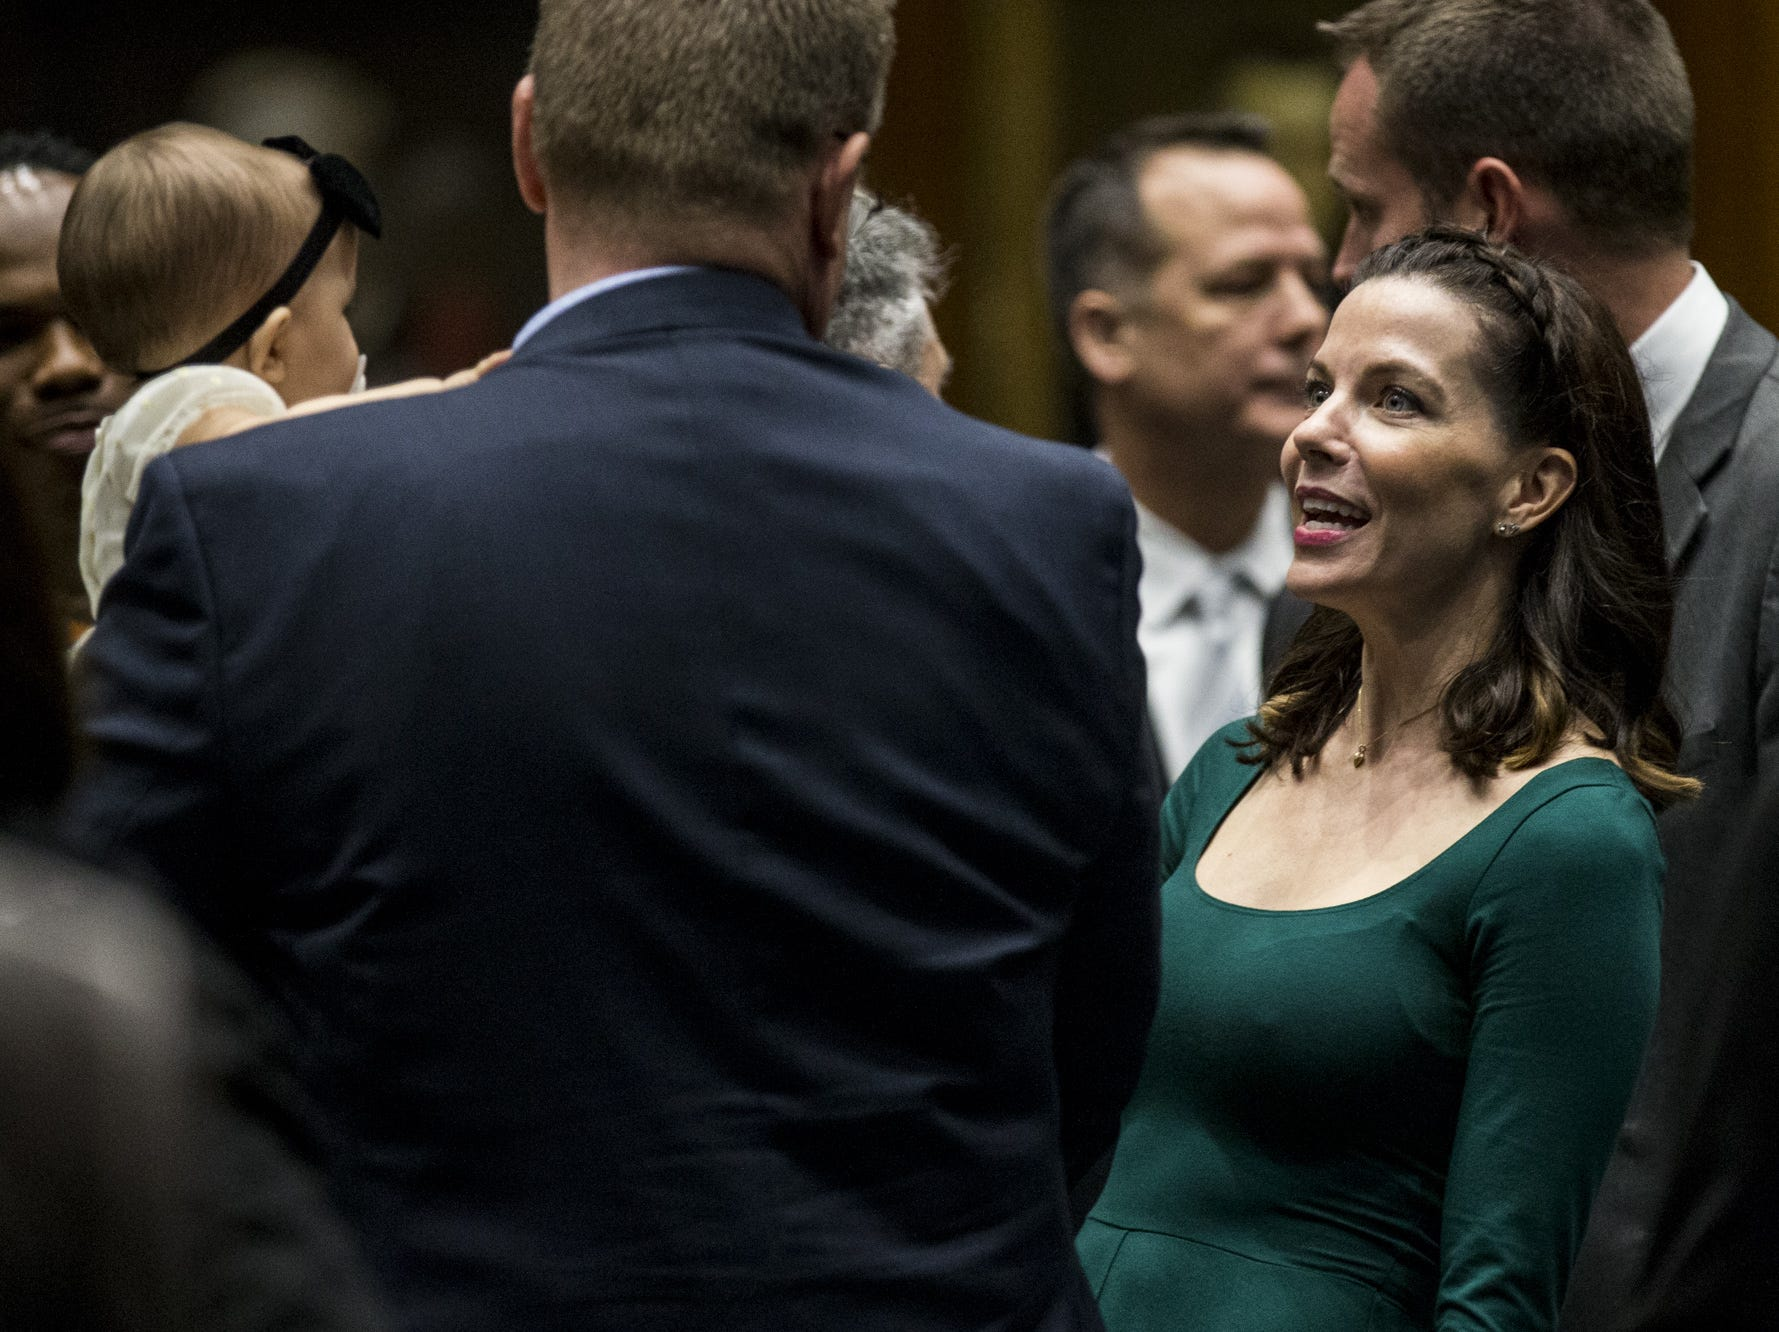 Rep. Michelle Ugenti-Rita talks with people on the floor before the State of the State on Jan. 14, 2019, at the Arizona House of Representatives Chambers in Phoenix.